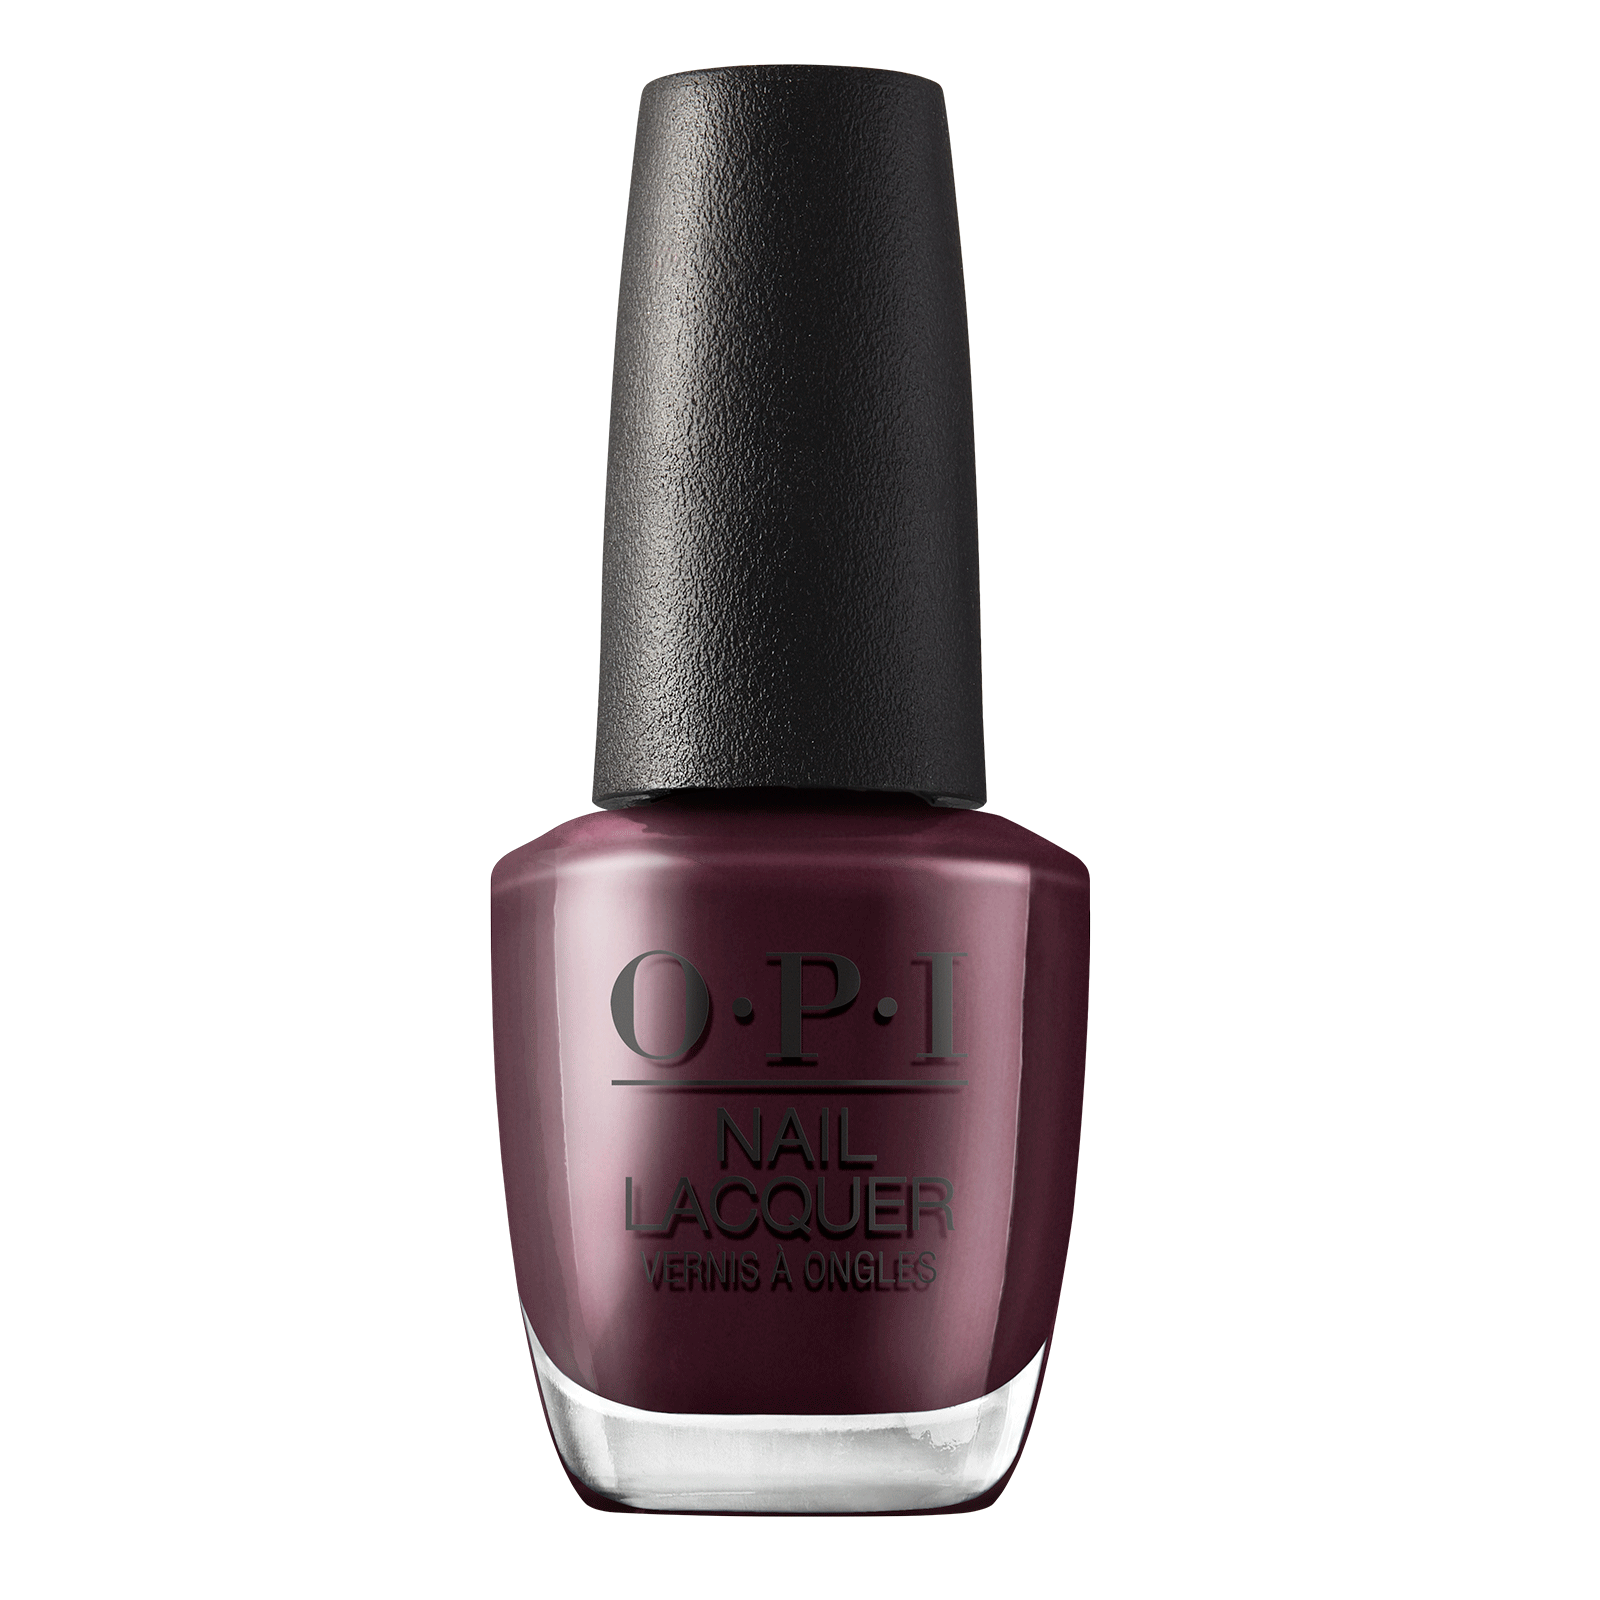 Nail Lacquer Muse of Milan Collection